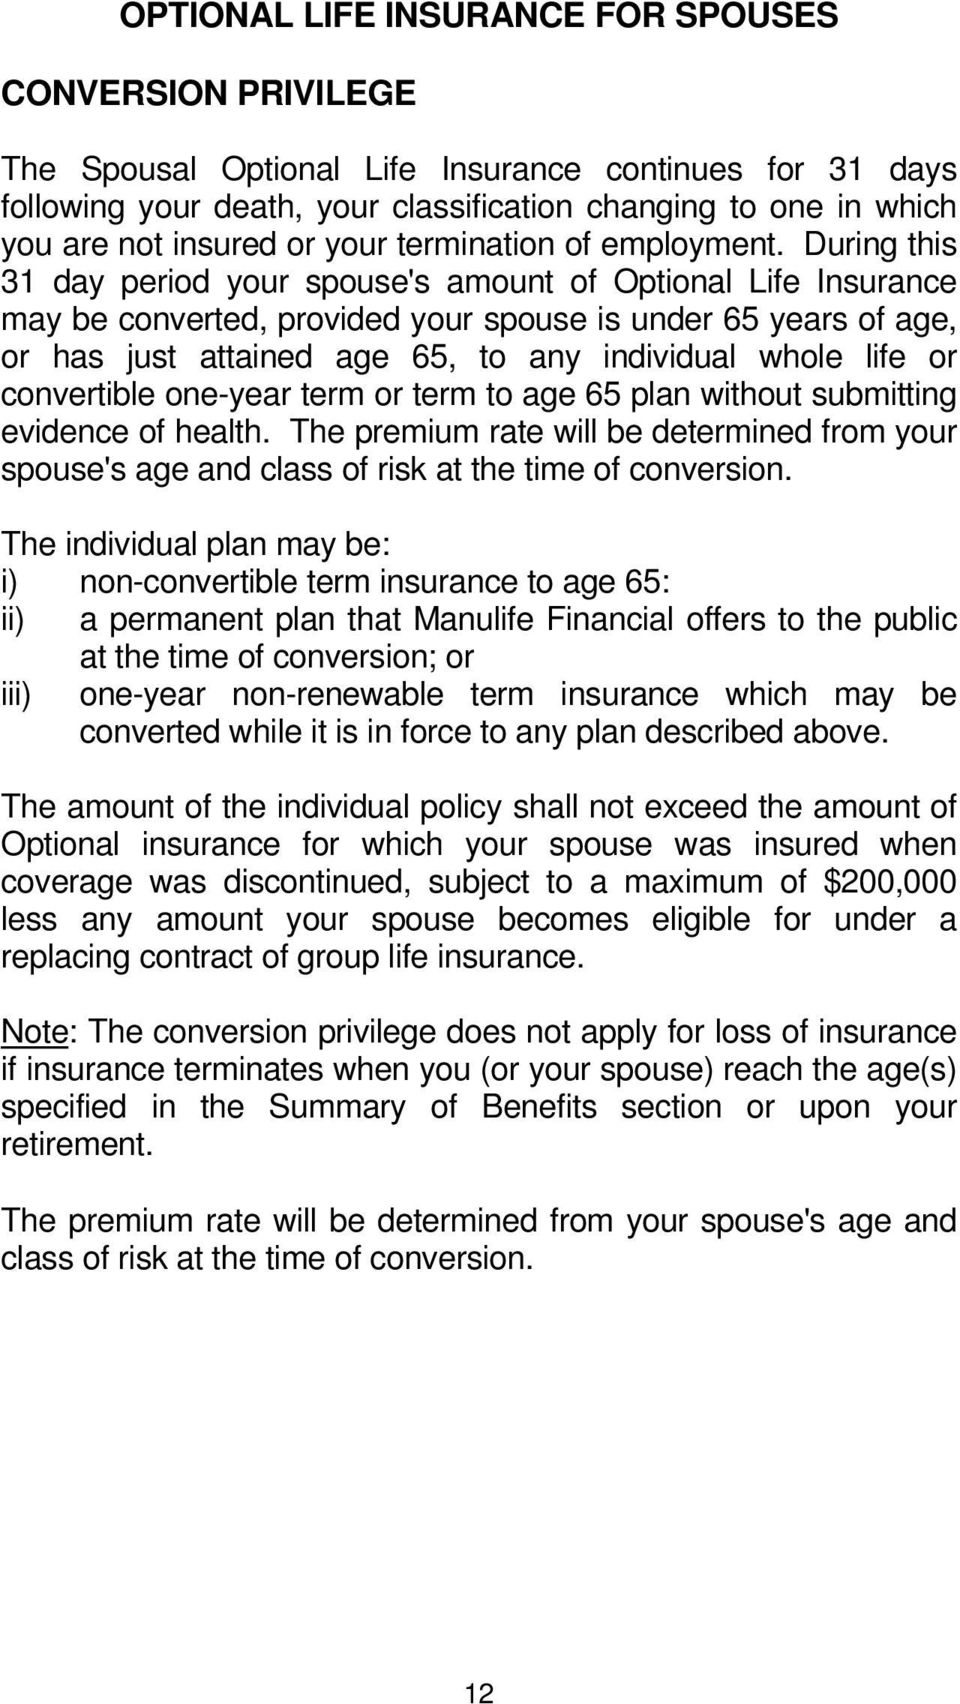 During this 31 day period your spouse's amount of Optional Life Insurance may be converted, provided your spouse is under 65 years of age, or has just attained age 65, to any individual whole life or